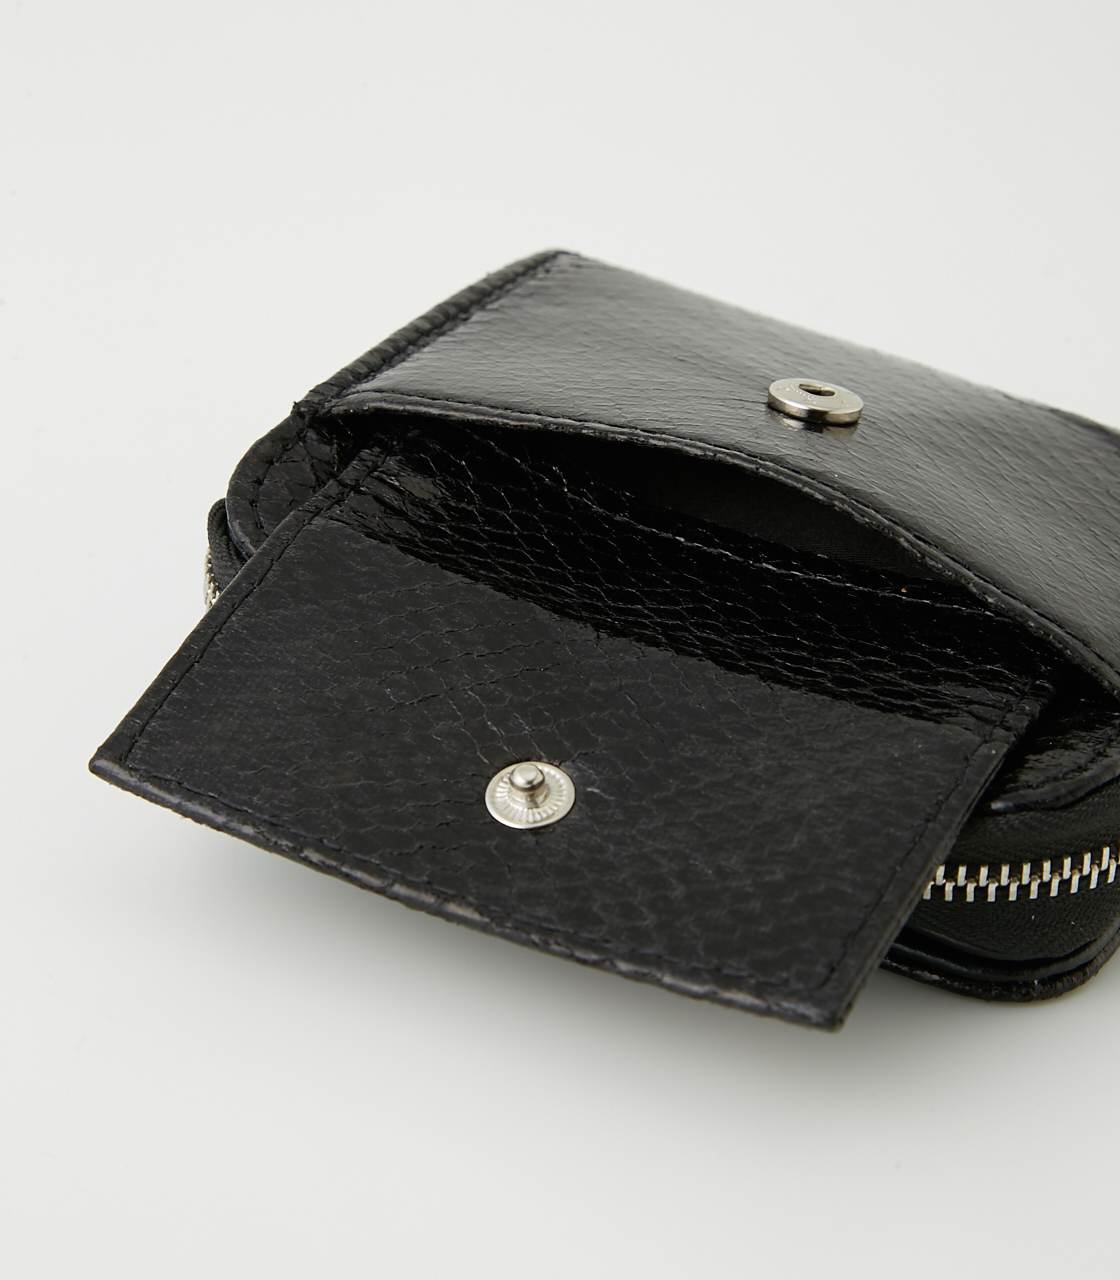 PYTHON COMPACT WALLET/パイソンコンパクトウォレット 詳細画像 柄BLK 6